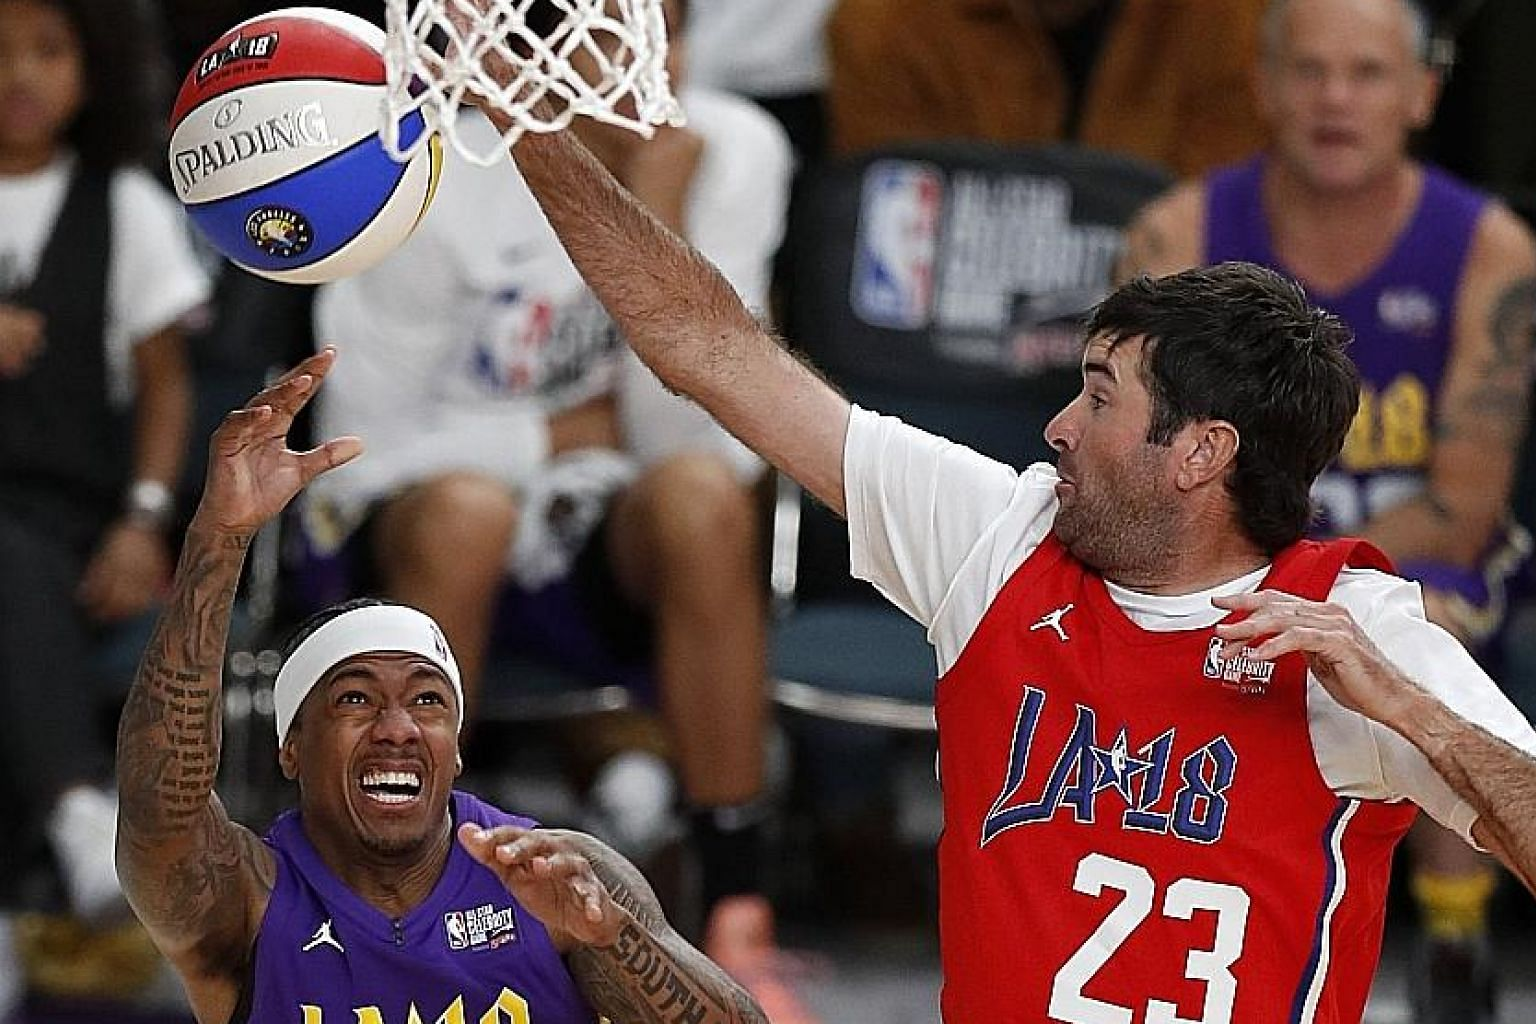 Golfer Bubba Watson blocking a shot by singer Nick Cannon during the NBA All-Star Celebrity Game in Los Angeles on Friday.